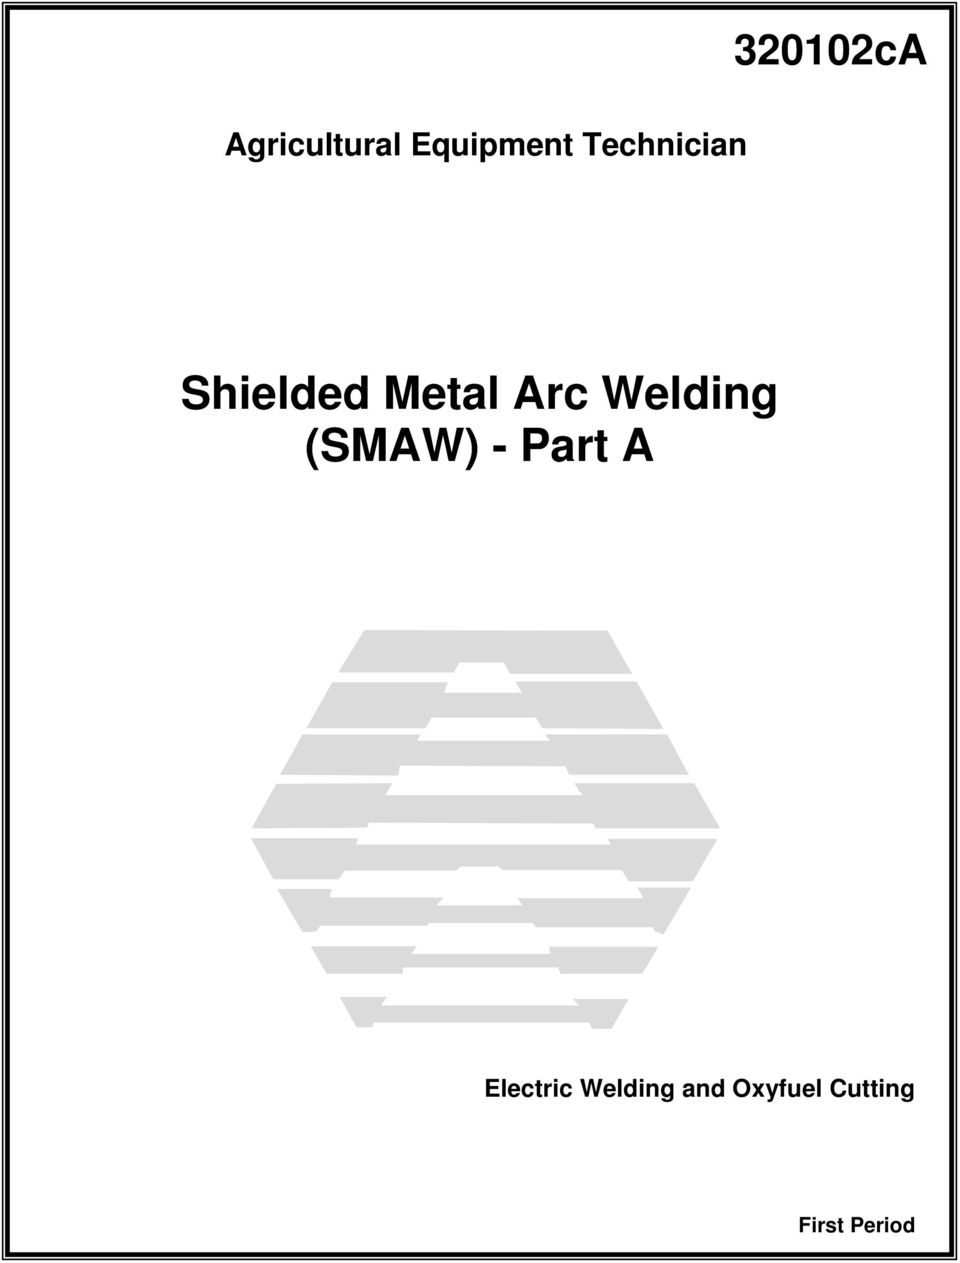 shielded metal arc welding  smaw  - part a